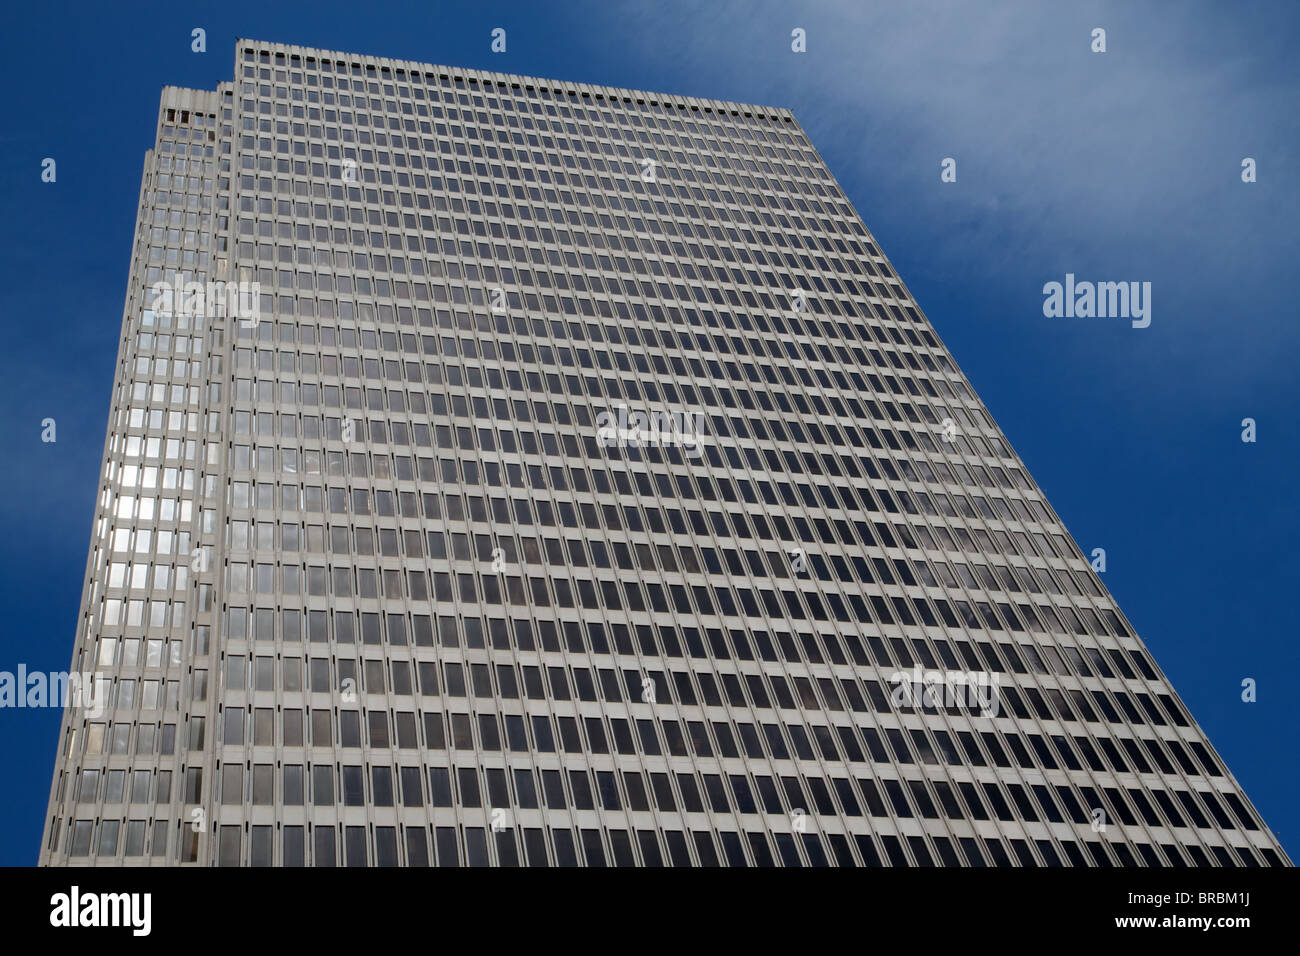 Skyscraper with blue sky background and reflections of clouds - Stock Image